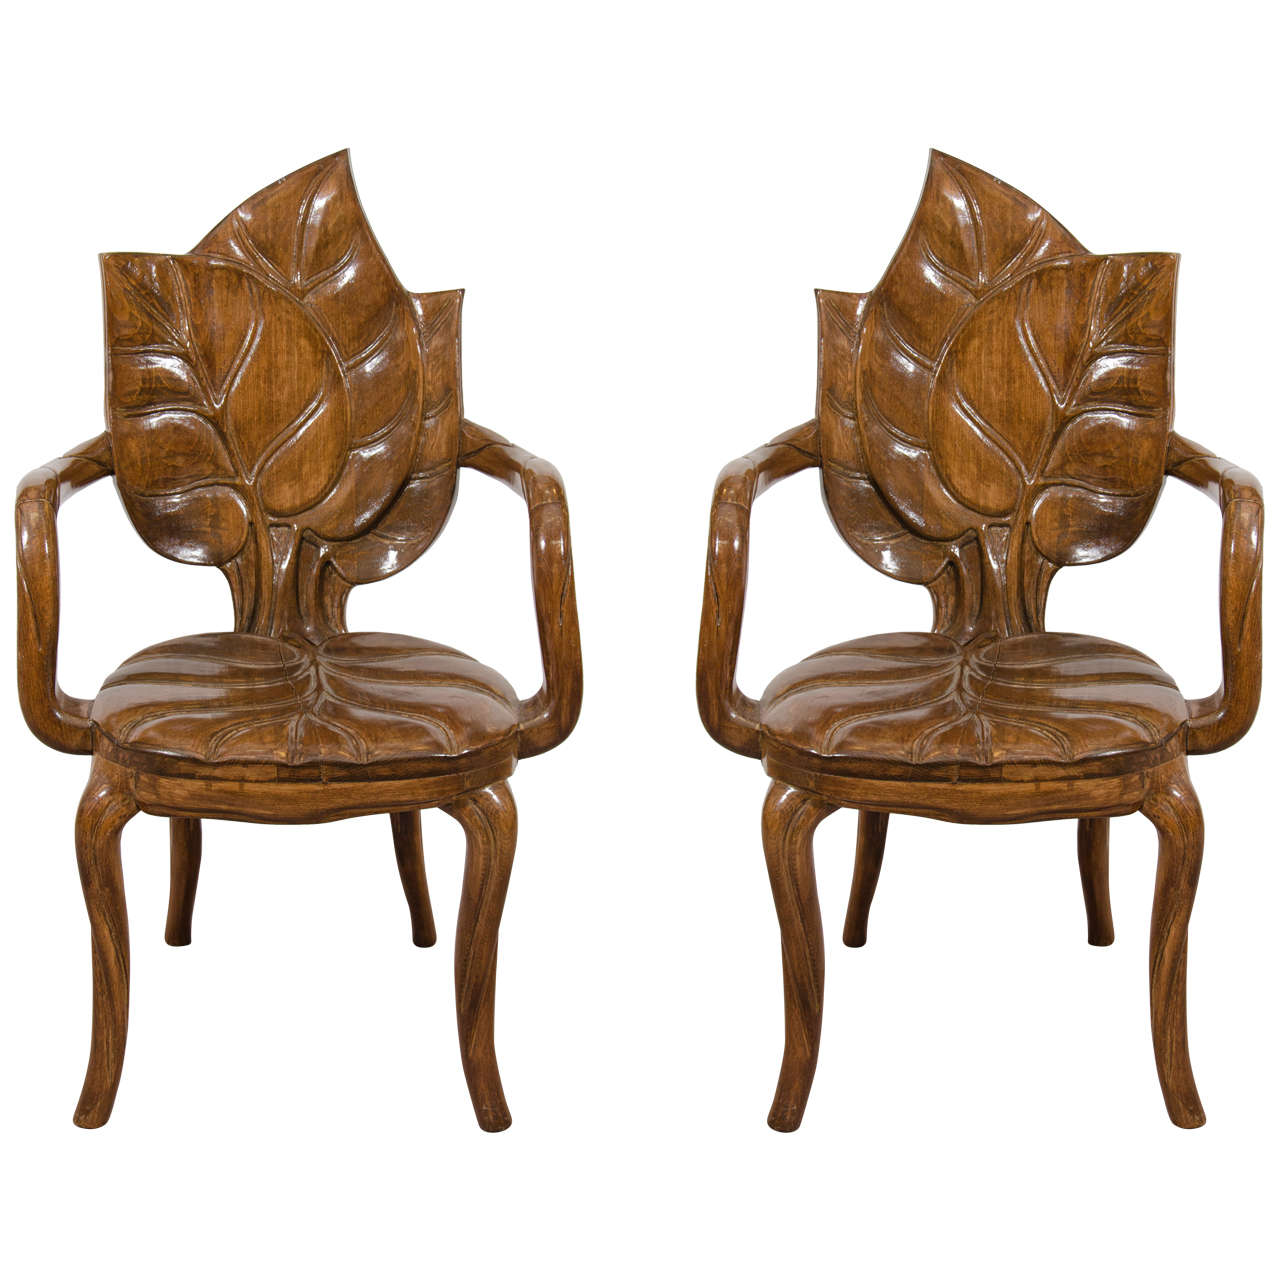 Art Nouveau Style Pair Of Sculptural Leaf Motif Armchairs Or Side Chairs At 1stdibs